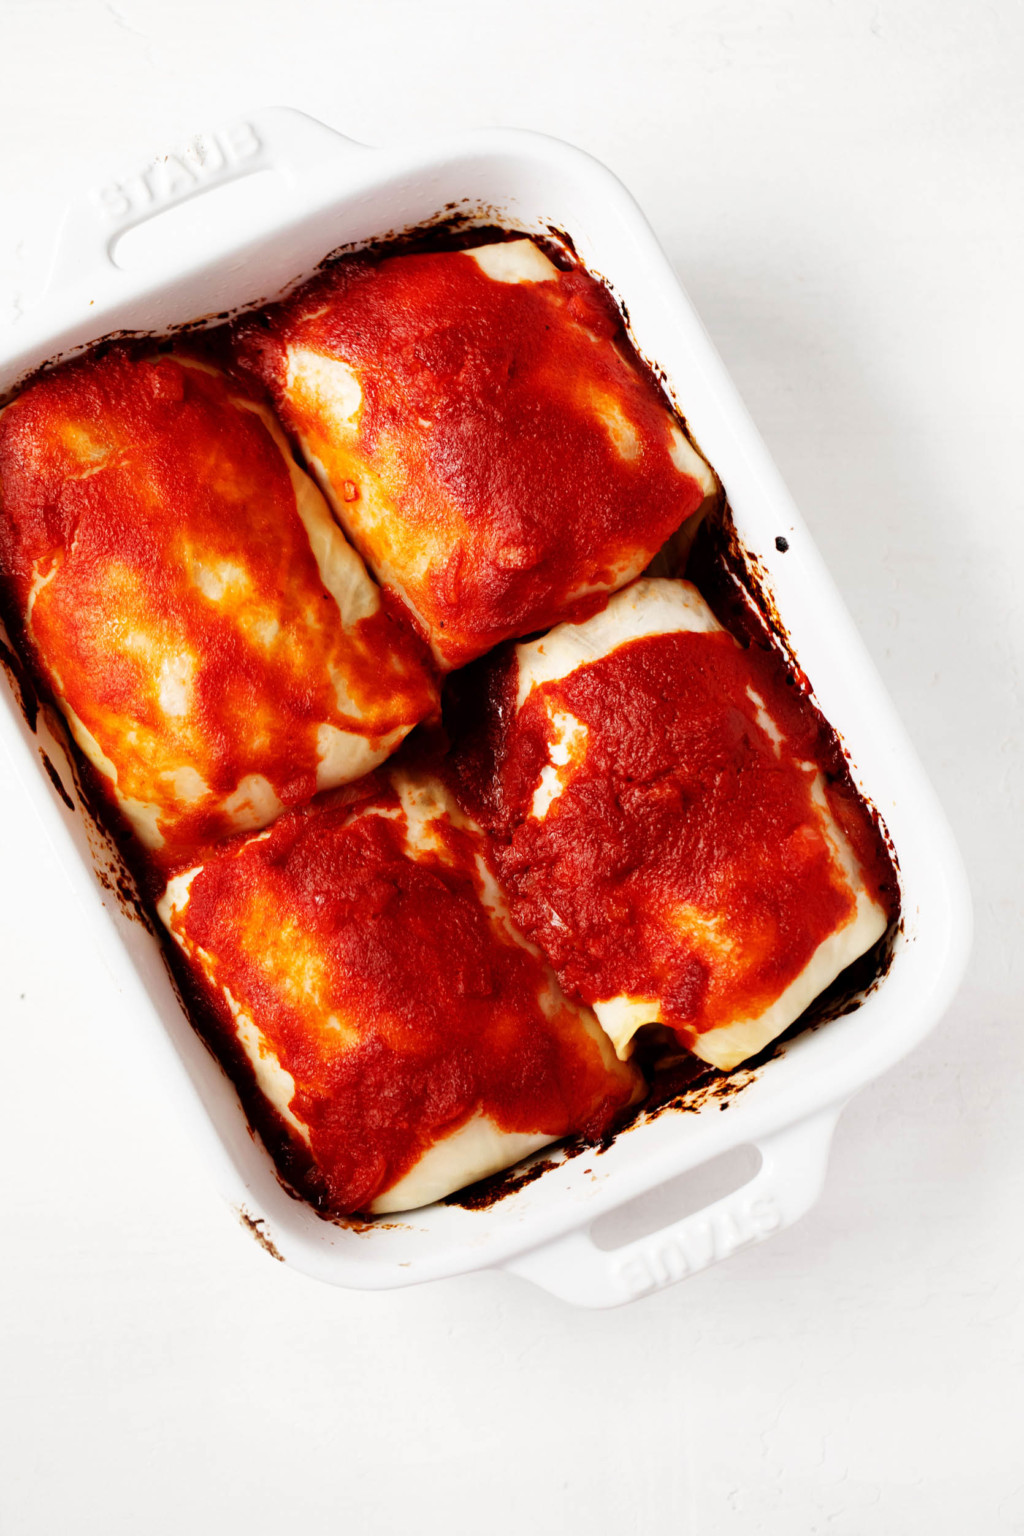 A small, rectangular, white baking dish has been filled with a plant-based entree.